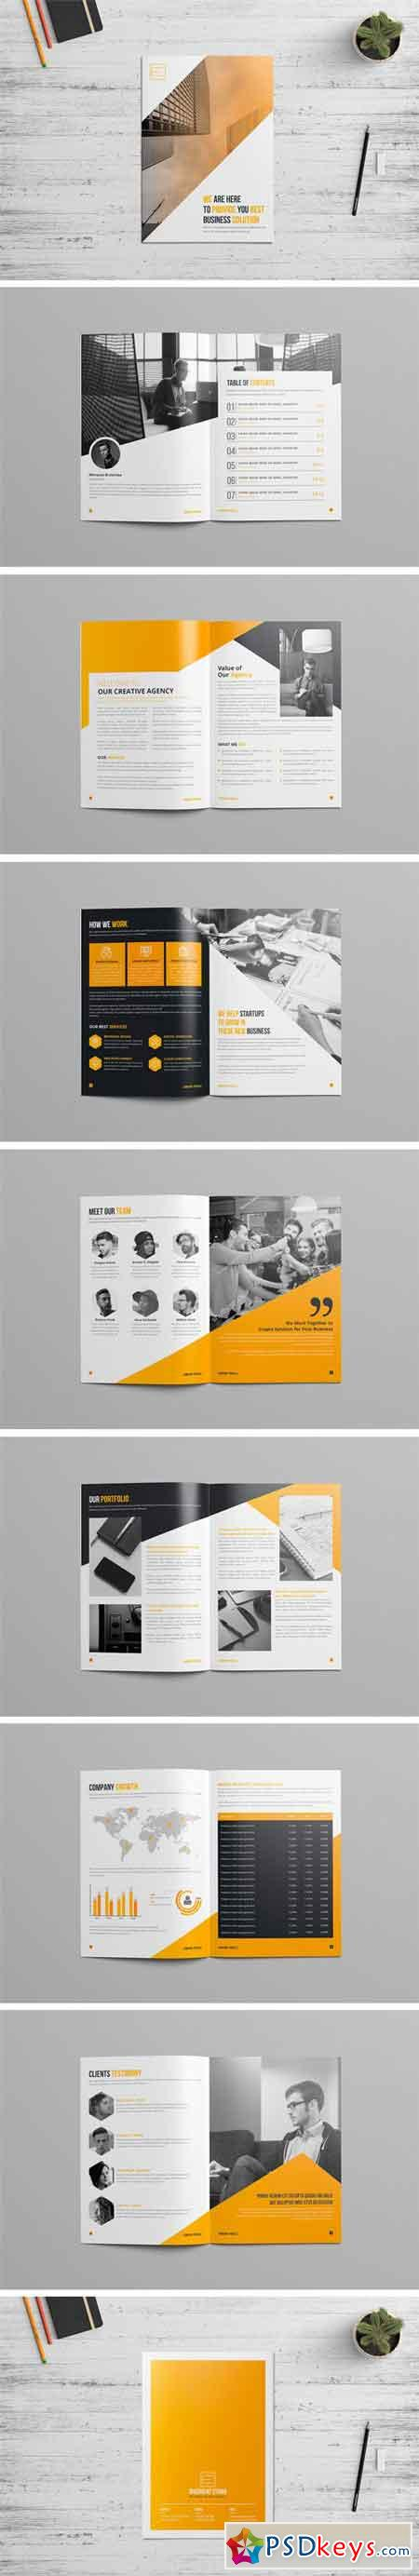 Company Profile Brochure Template 2394103